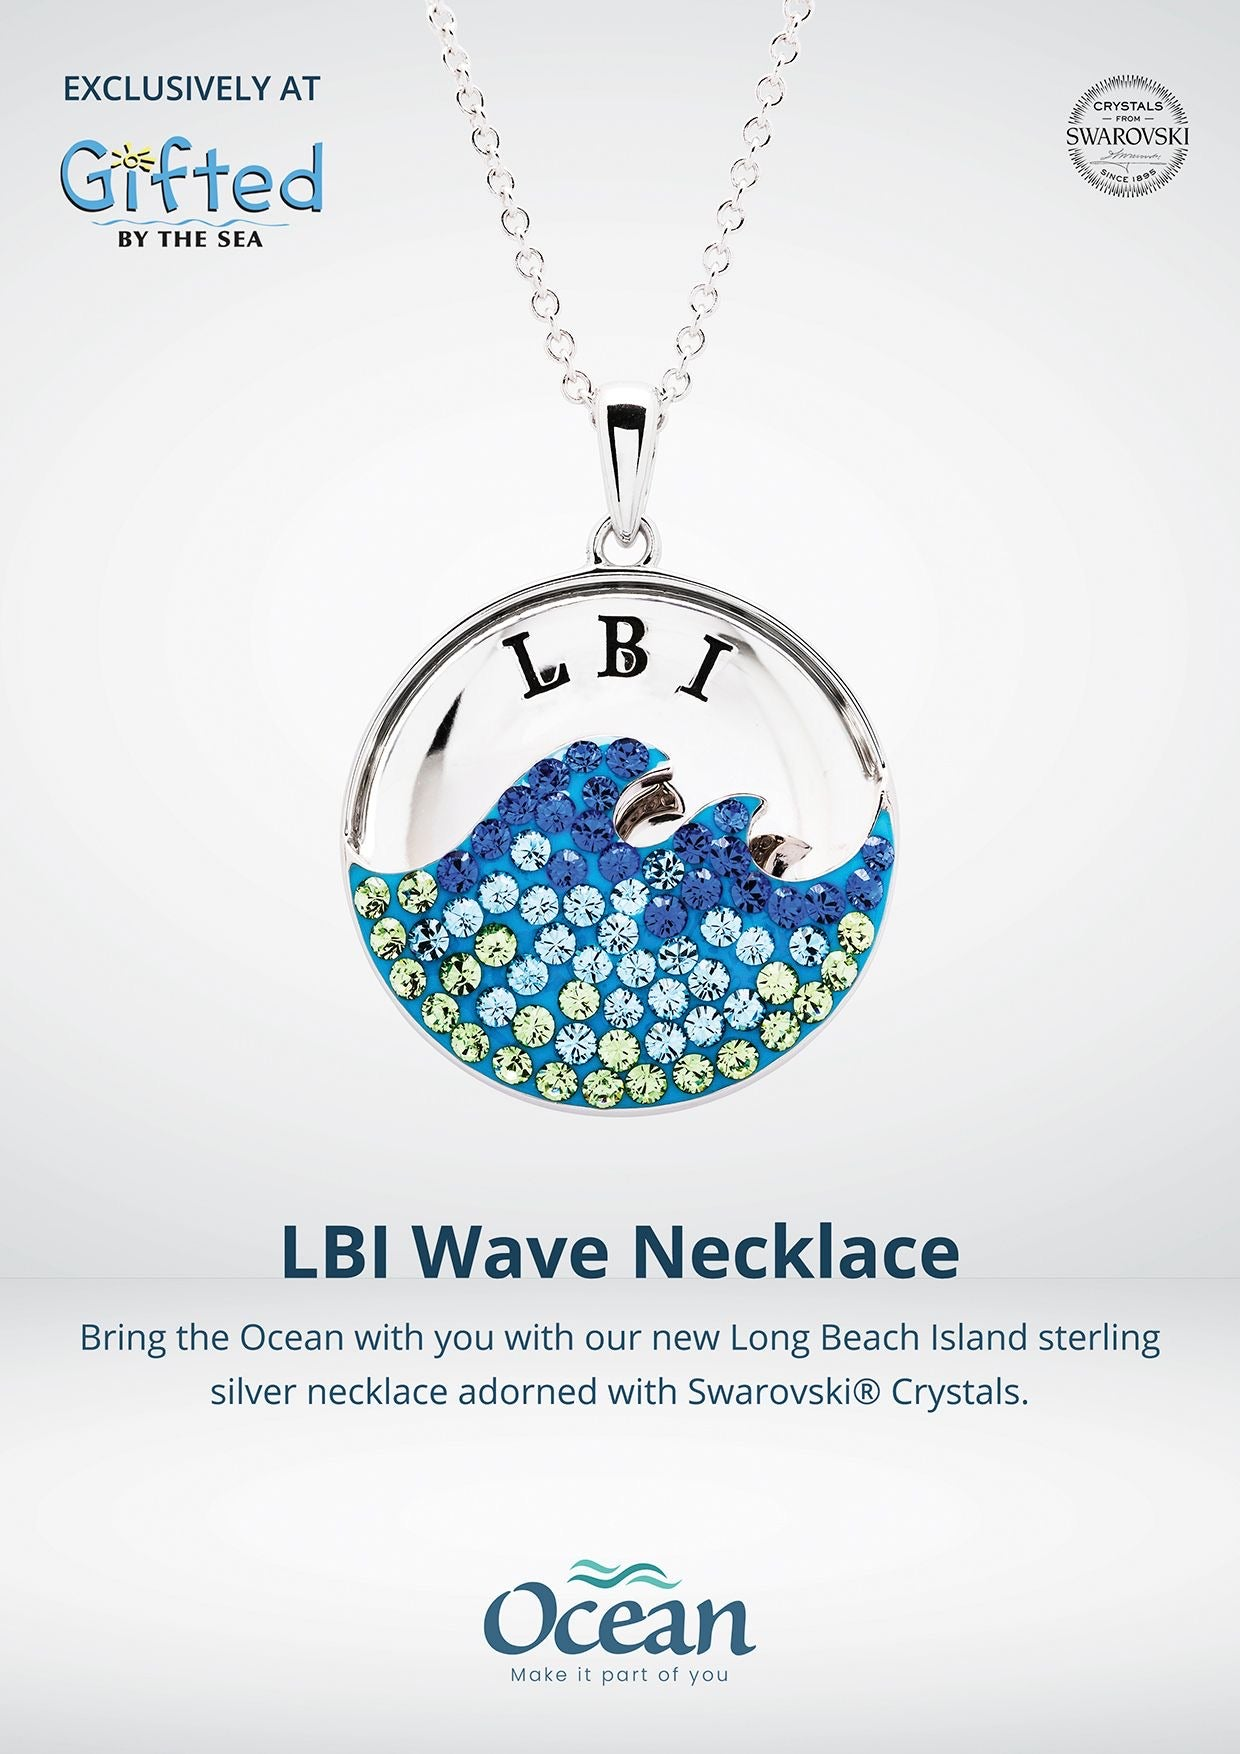 LBI Wave Necklace